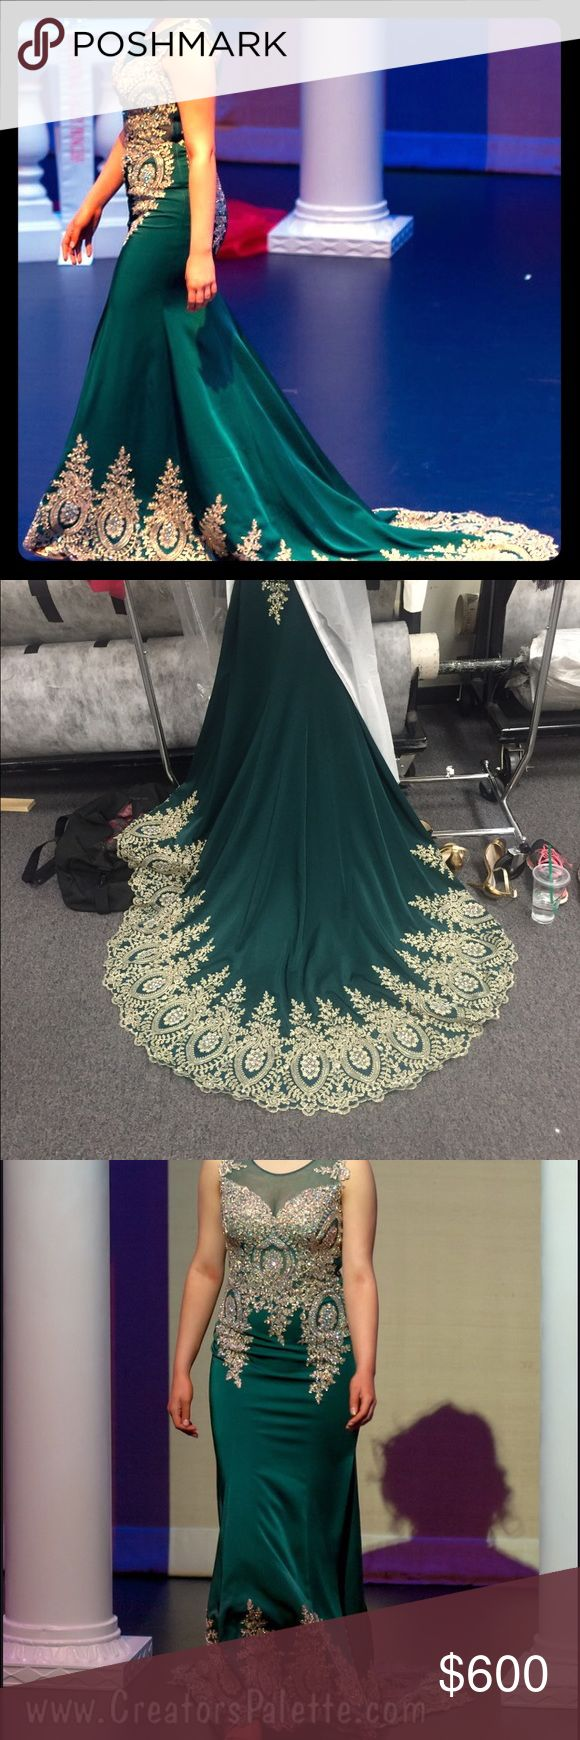 "Beautiful Green & Gold Pageant Dress w/ 3 ft Train Worn for pageant. No brand/bought at garment district Los Angeles, CA. I am 5'8"" in this picture with 2.5"" heels on. Three foot train. Altered in bust (let out to fit 36DD). I was 145lbs at the time. Gorgeous dress. I can provide measurements if requested. Feel free to make an offer :) Dresses Prom"